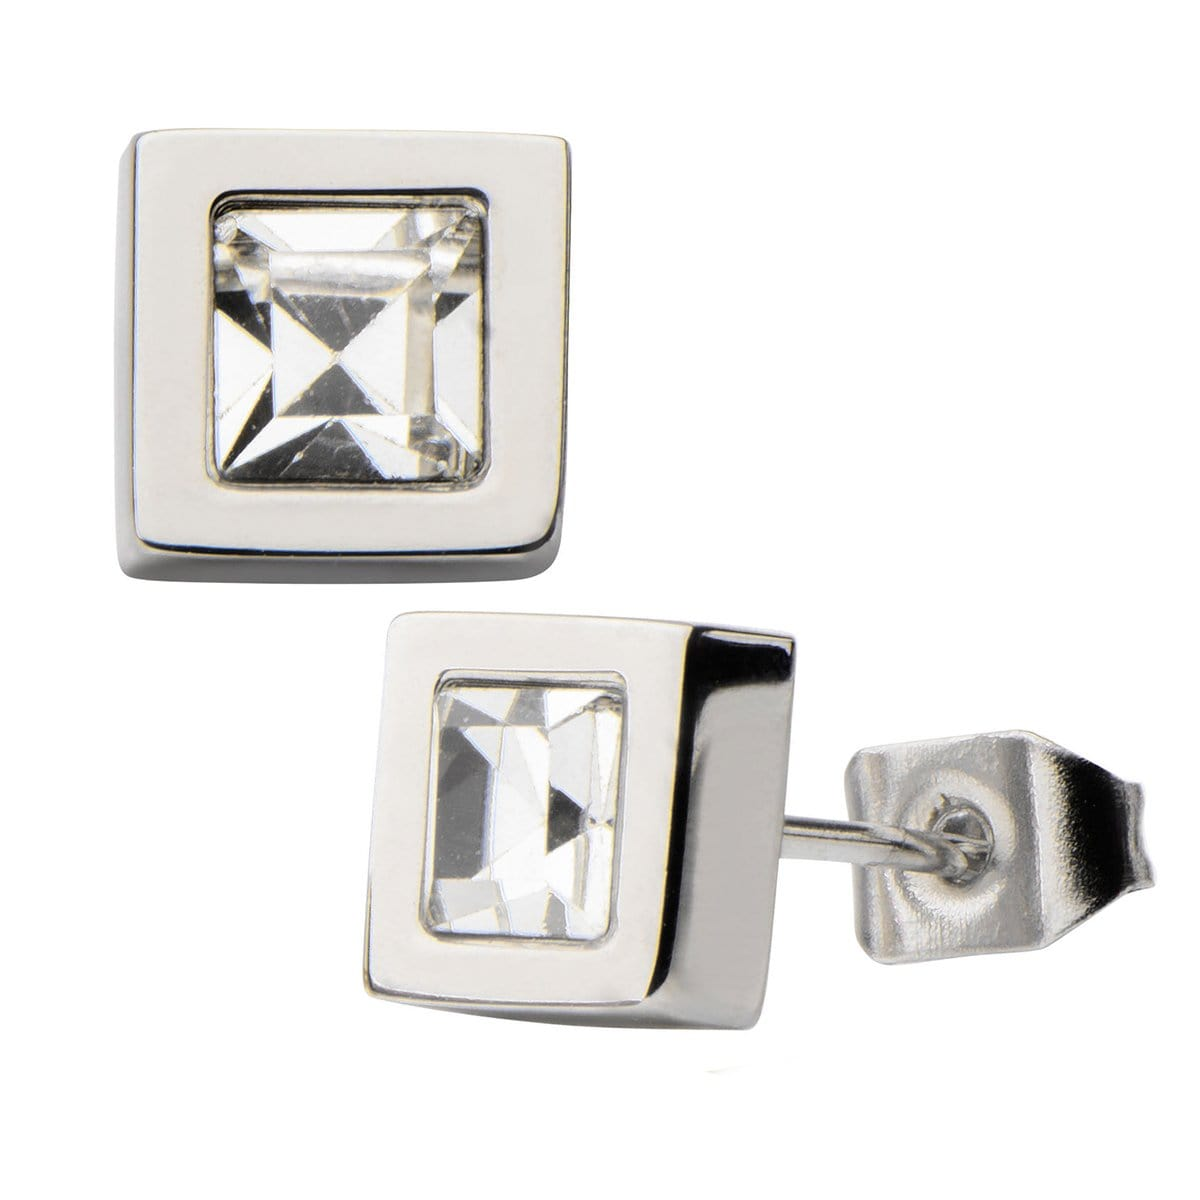 Silver Stainless Steel Princess Cut Crystal Square Studs Earrings